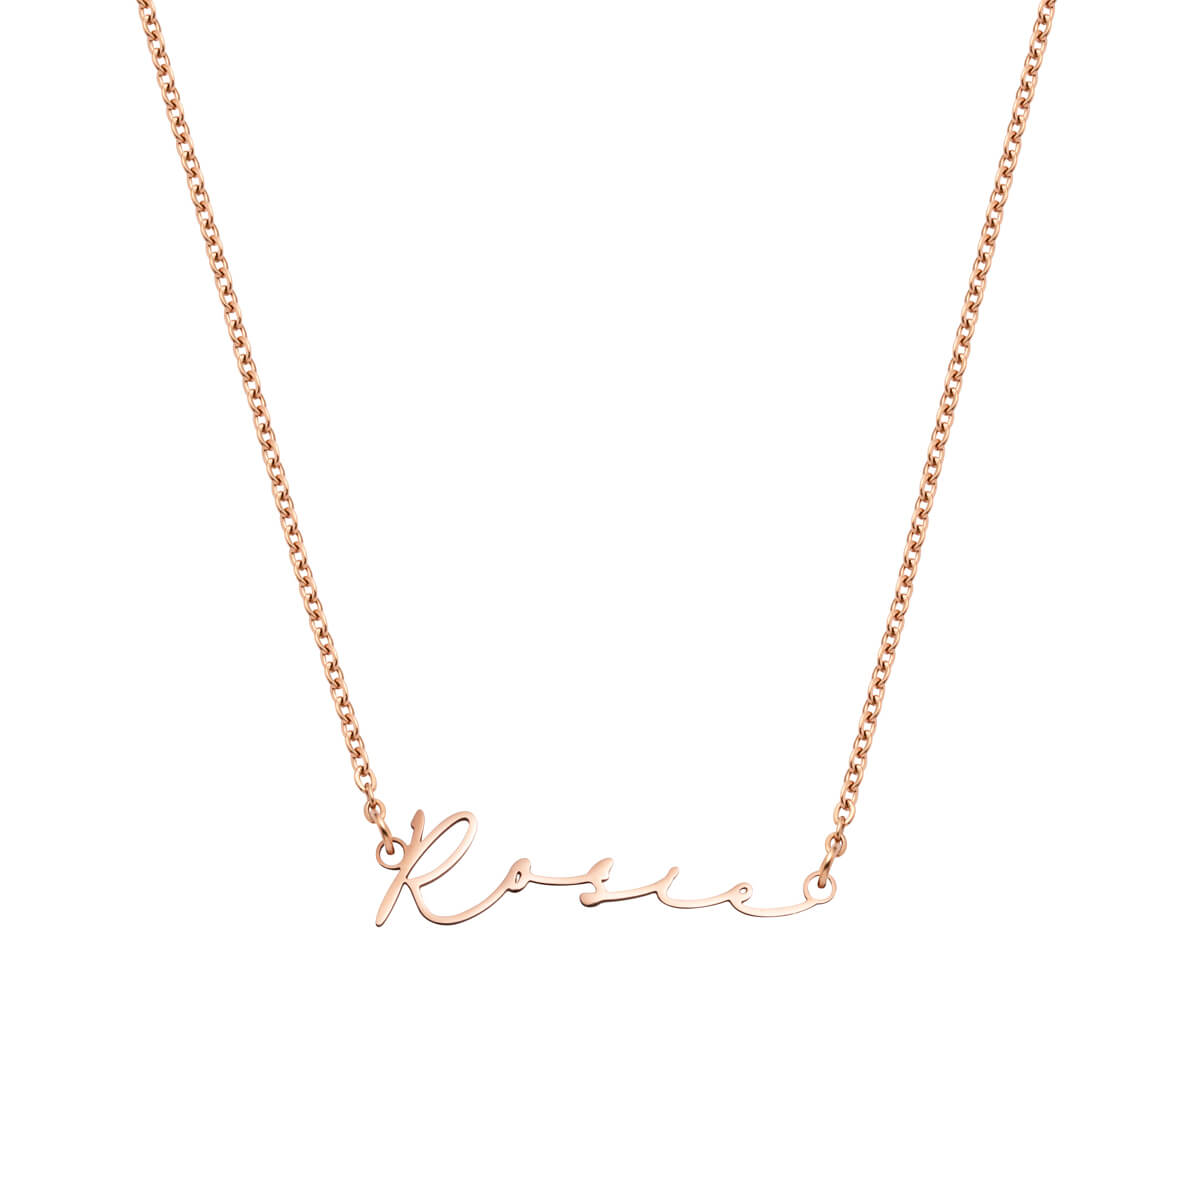 Signature Name Necklace (Rose Gold)